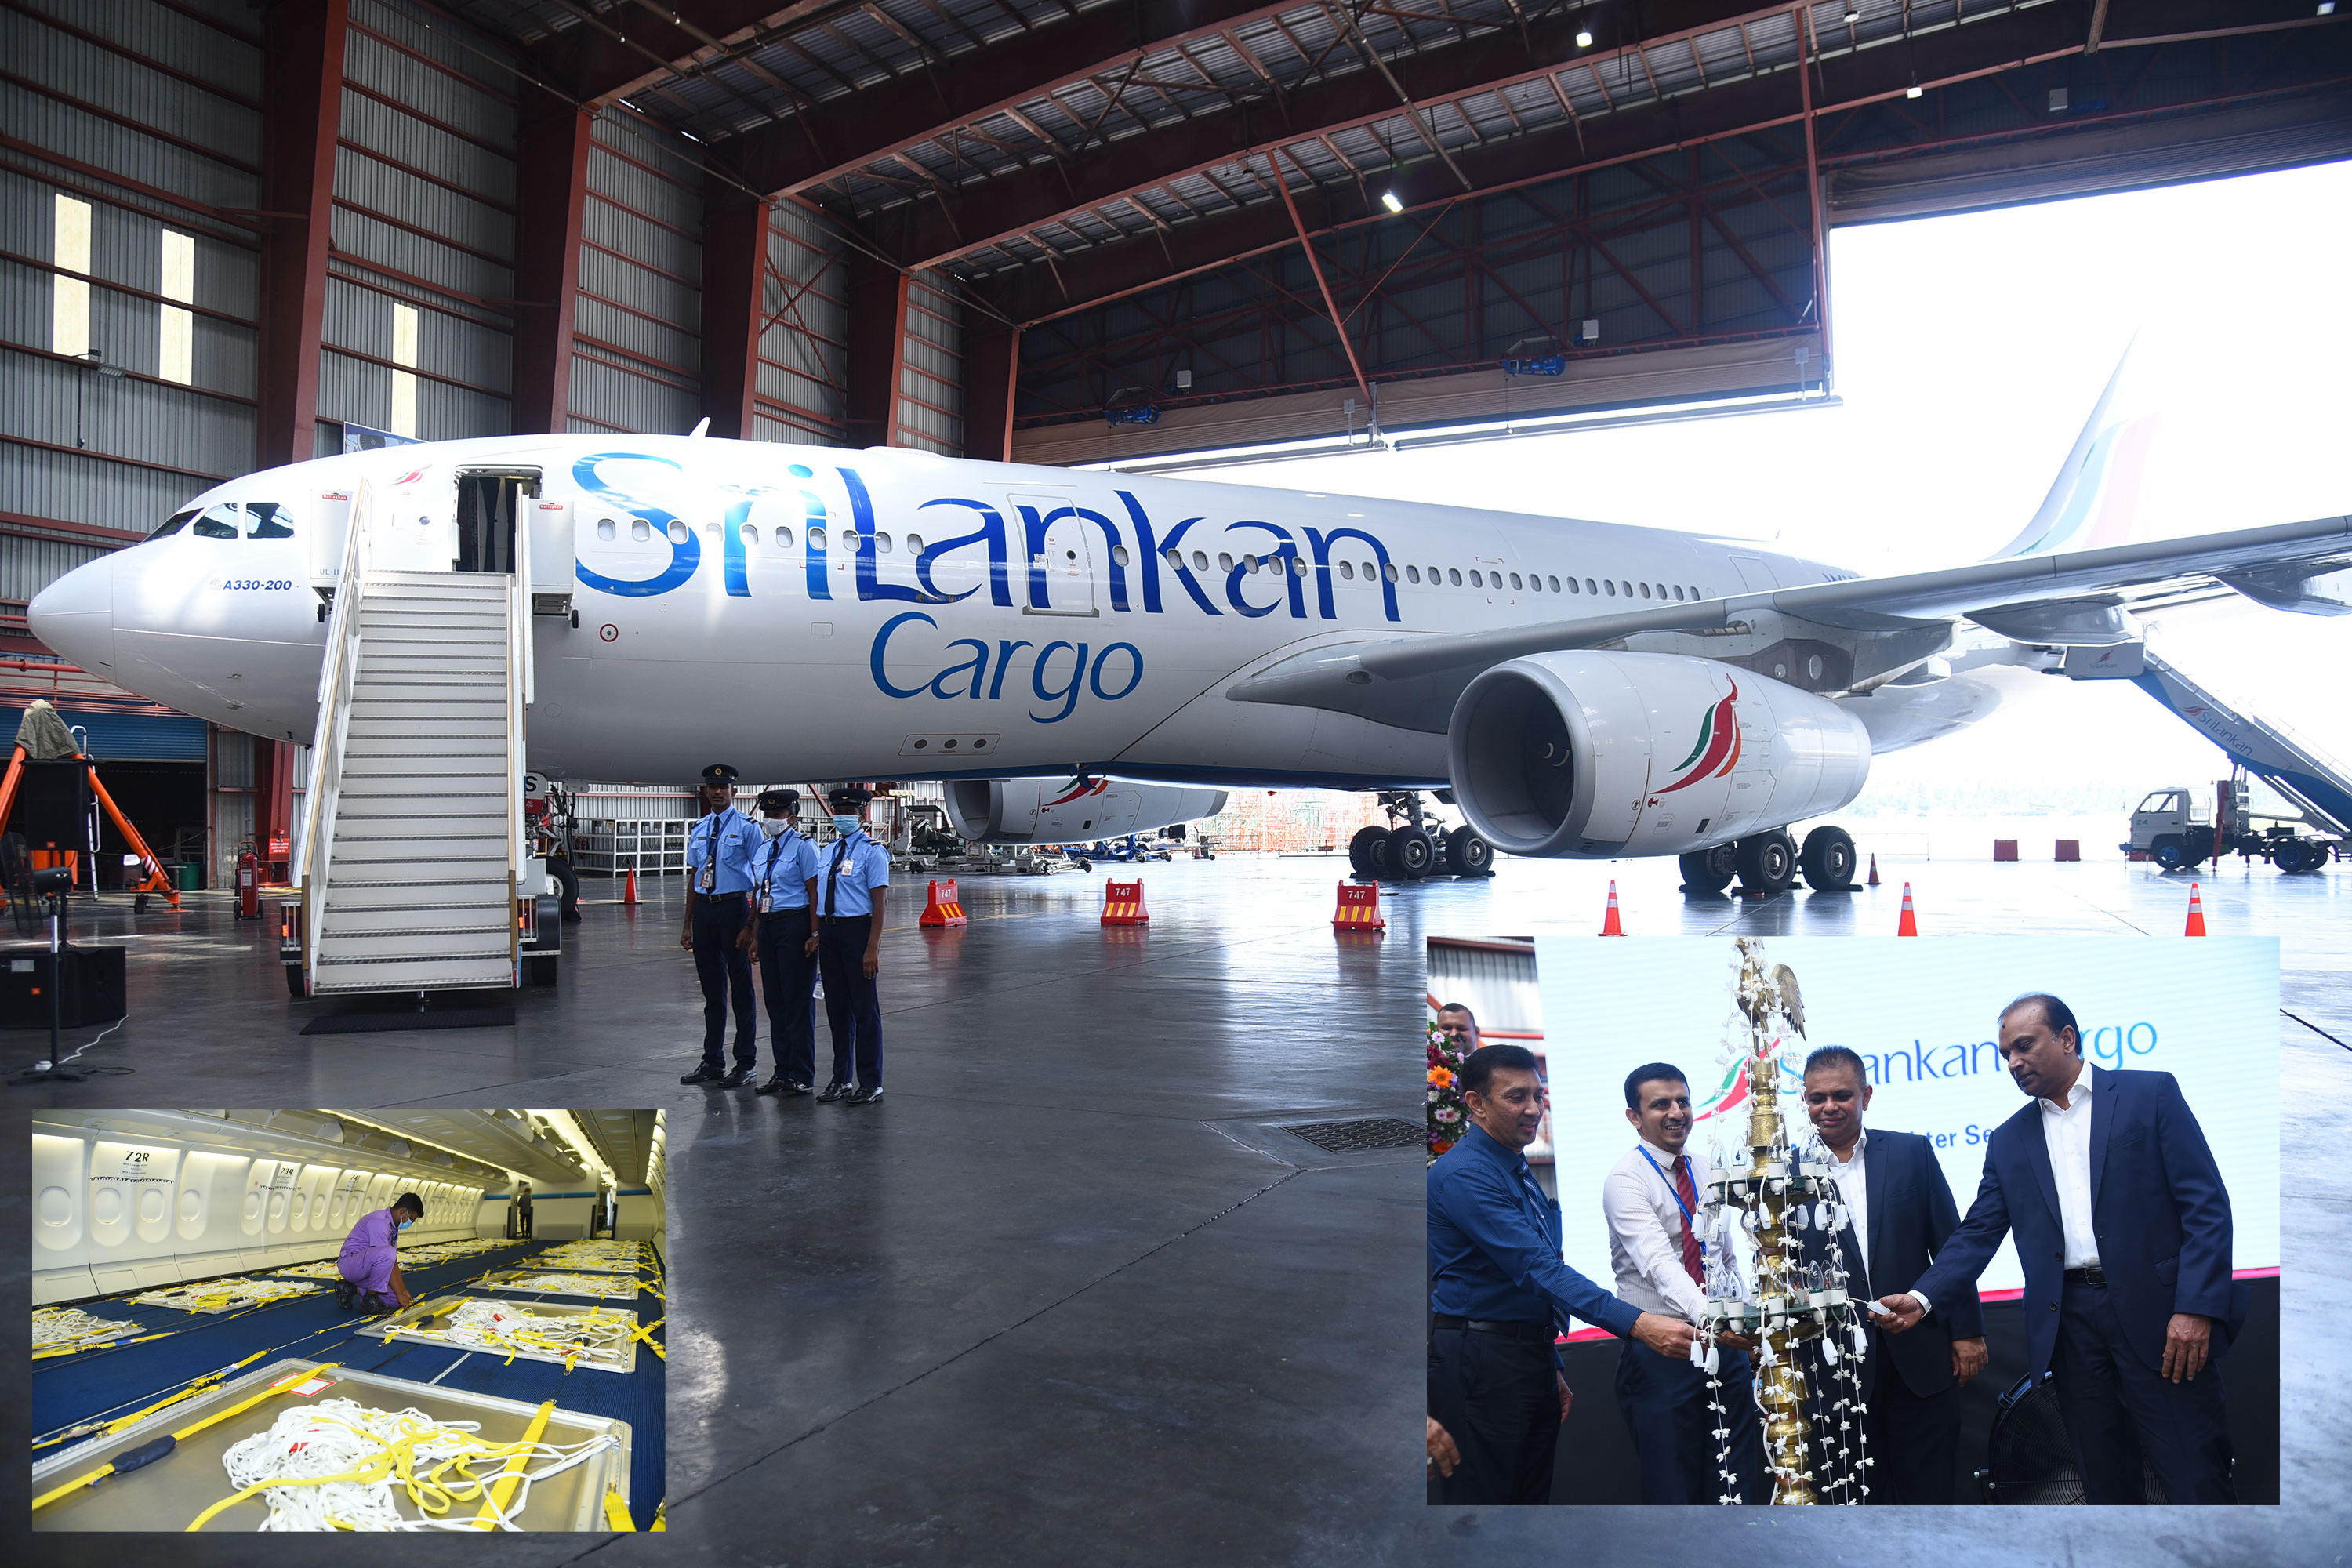 Lighting of the oil lamp on this historic occasion by Ashok Pathirage - Chairman of SriLankan Airlines at the launch of   SriLankan Cargo's first ever wide body Airbus A330-200 freighter aircraft.